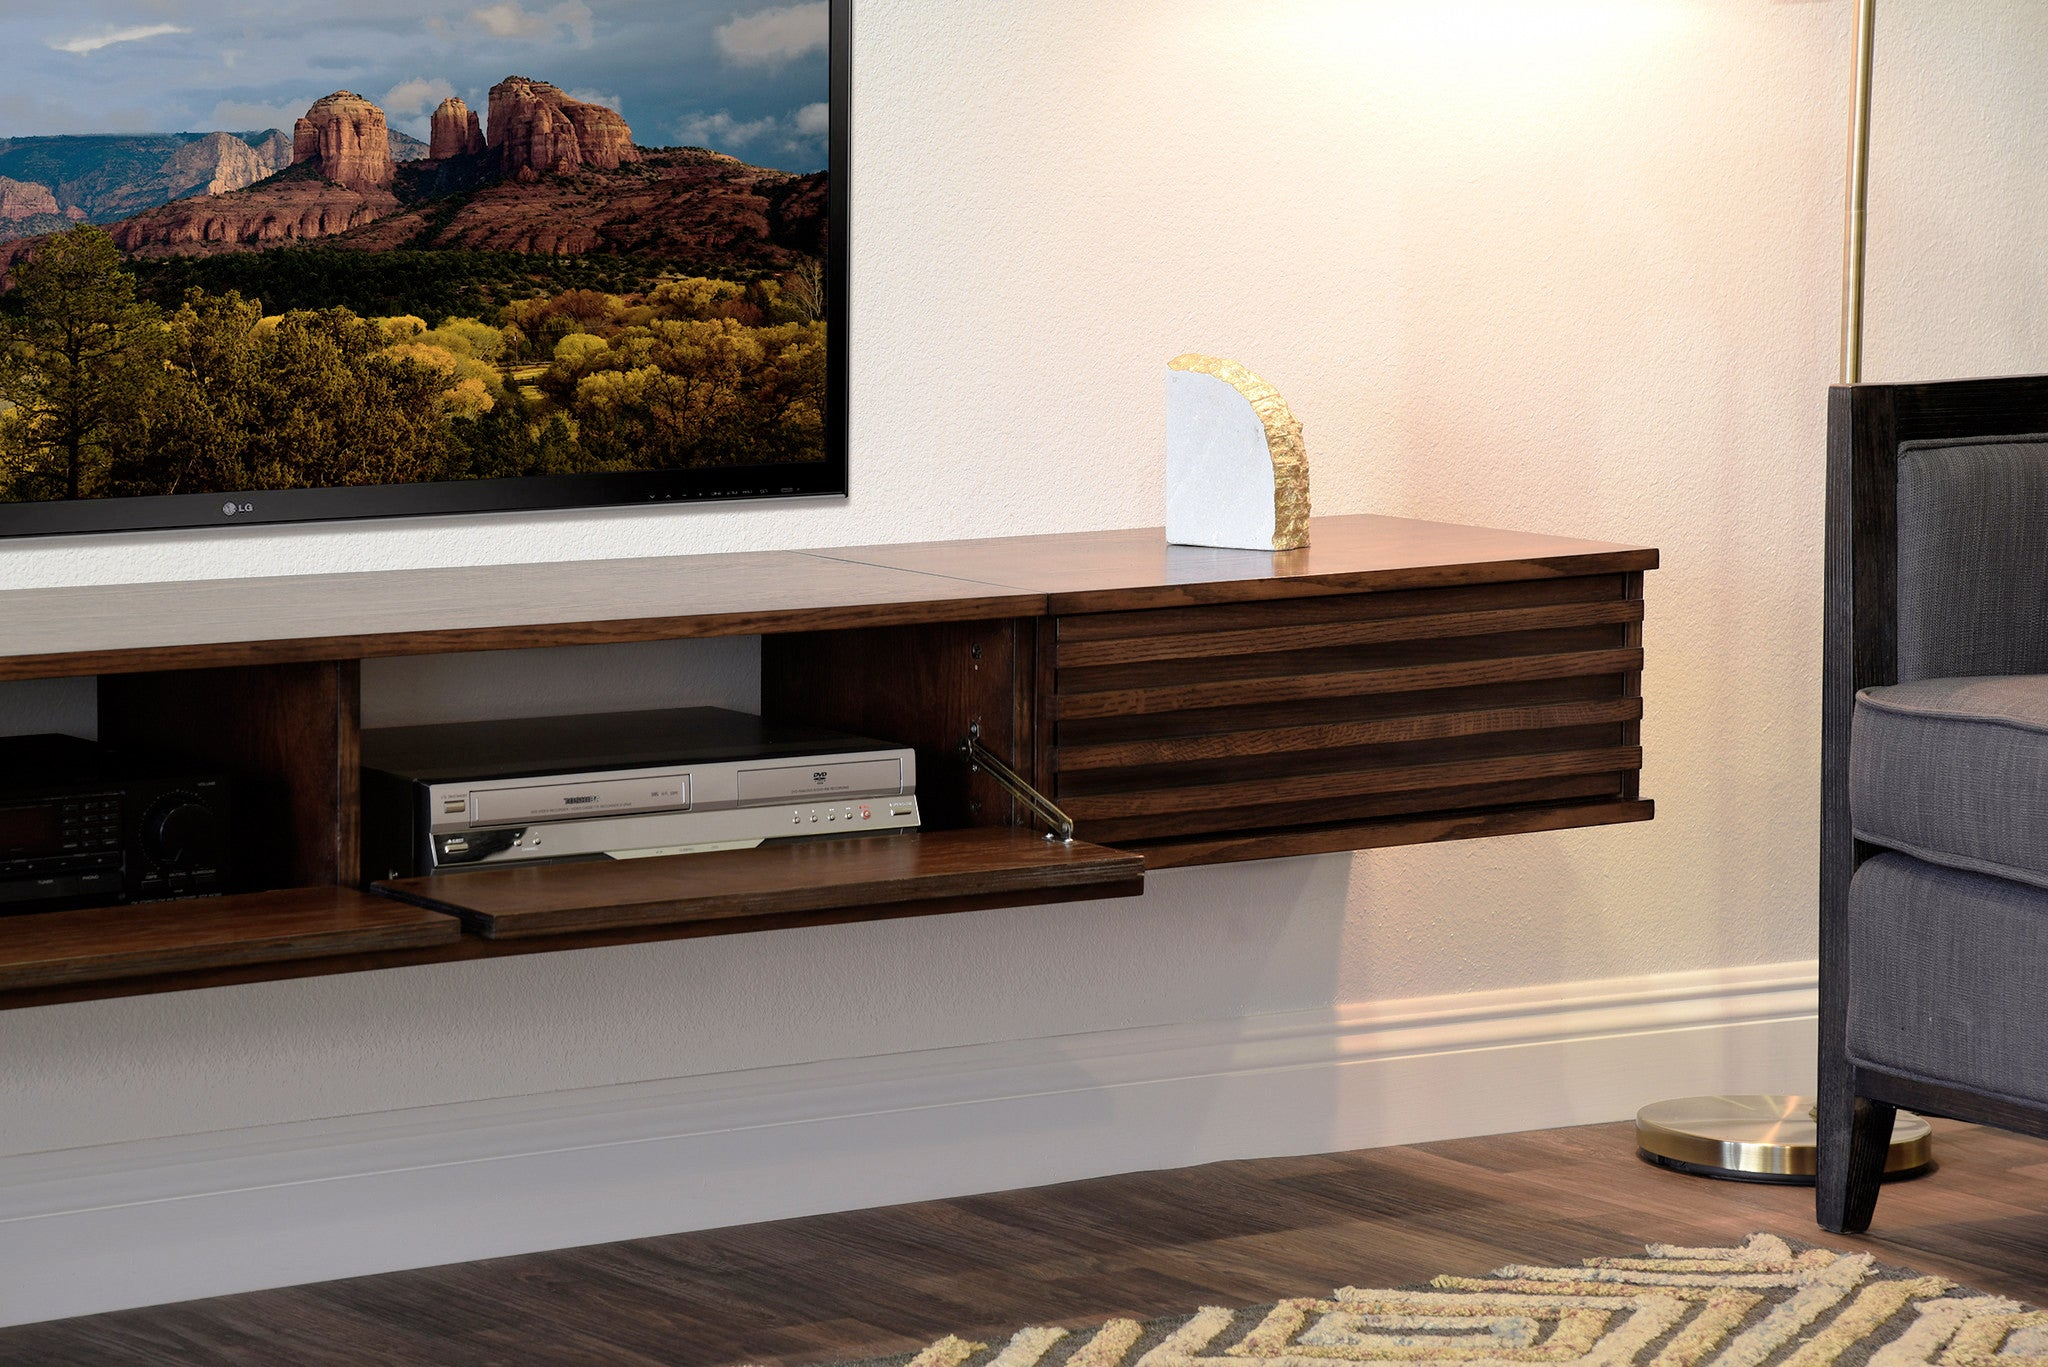 Floating tv stand wall mount entertainment center lotus 3 piece floating tv stand wall mount entertainment center lotus 3 piece russet brown amipublicfo Image collections